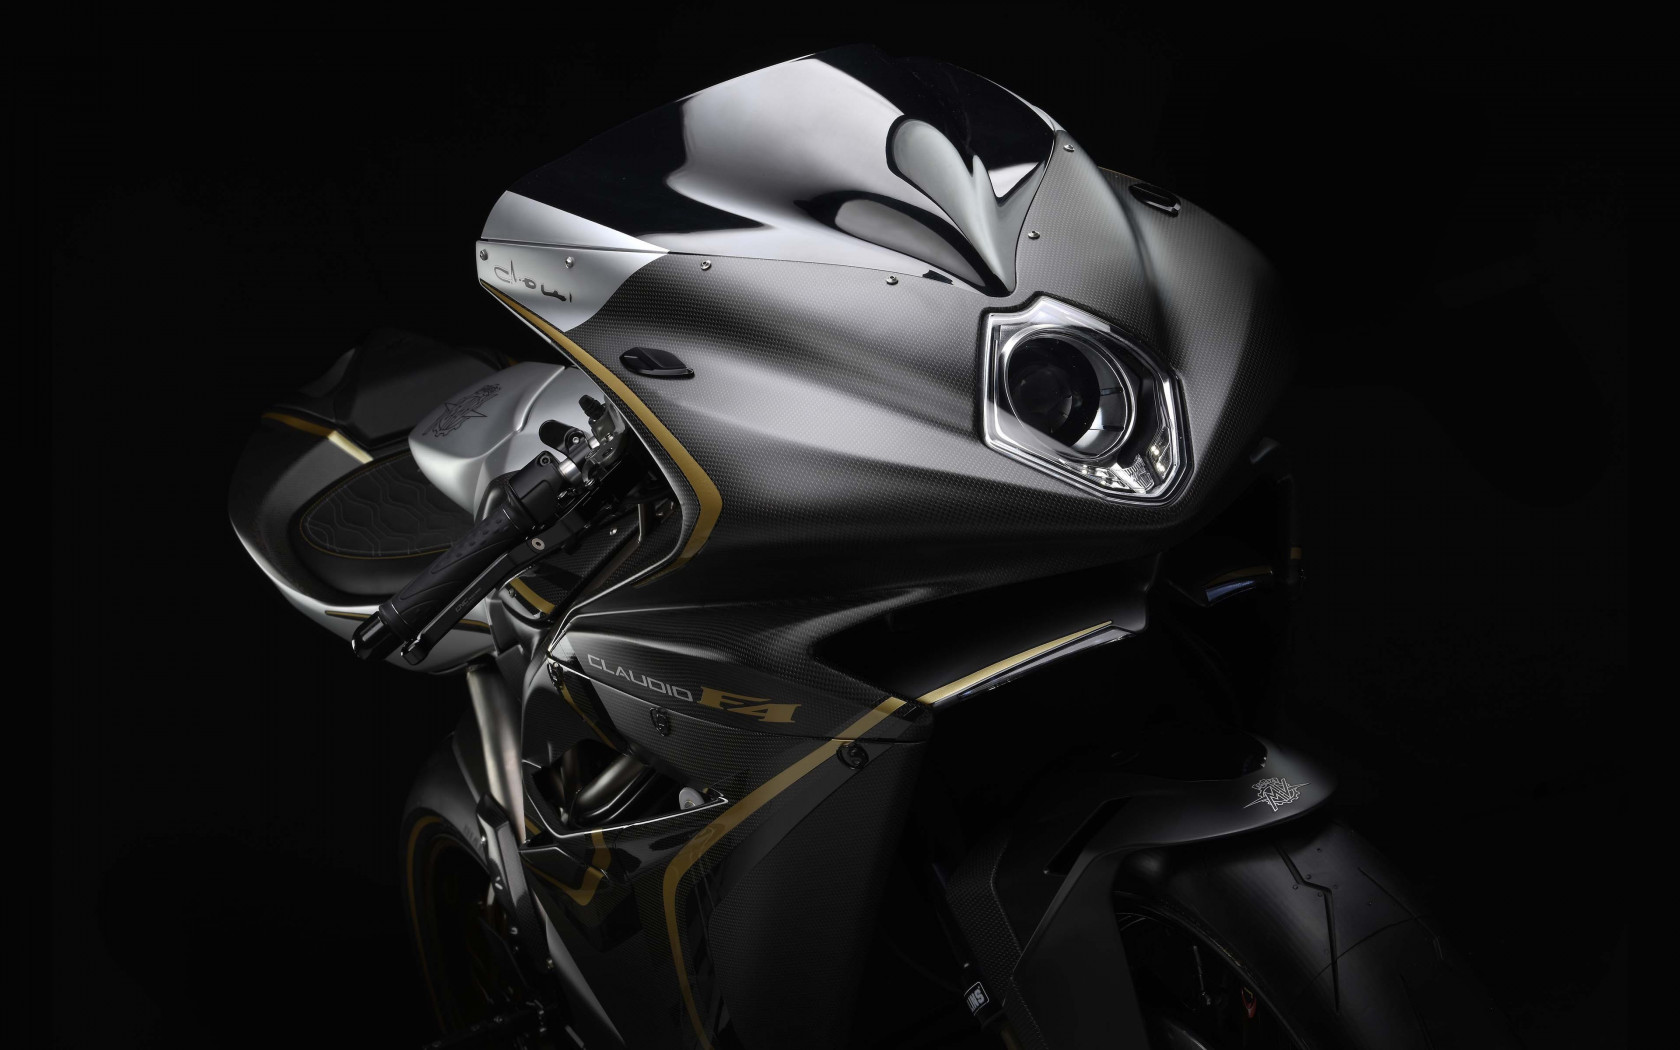 MV Agusta F4 Claudio wallpaper 1680x1050